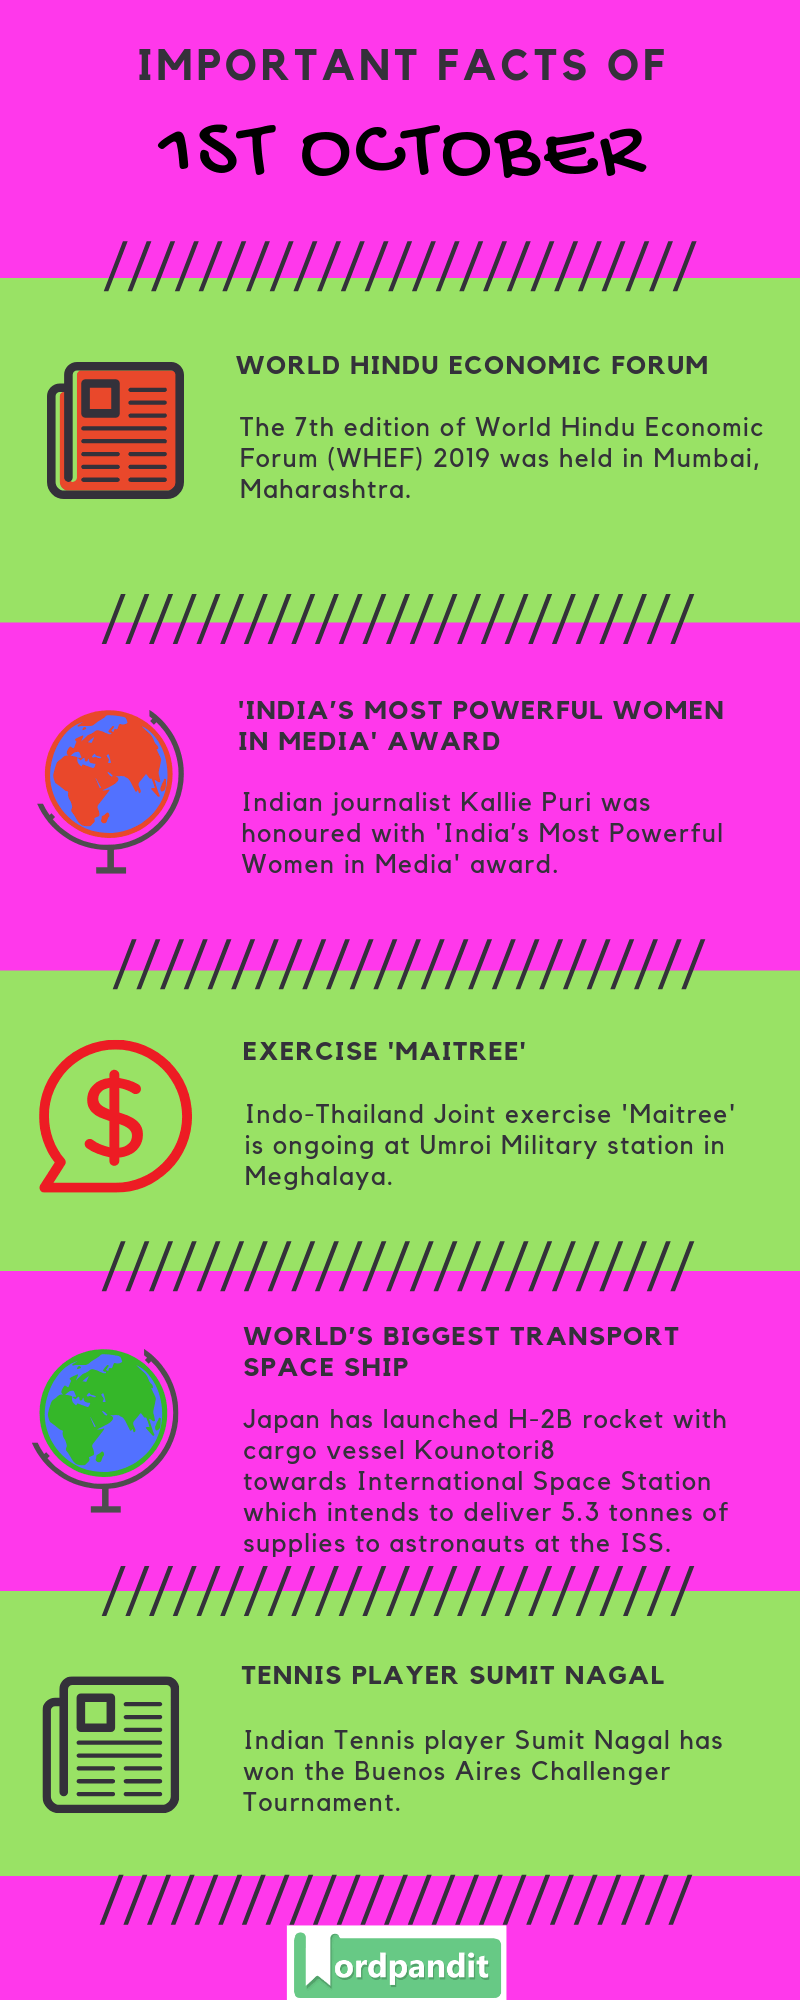 Daily Current Affairs 1 October 2019 Current Affairs Quiz 1 October 2019 Current Affairs Infographic